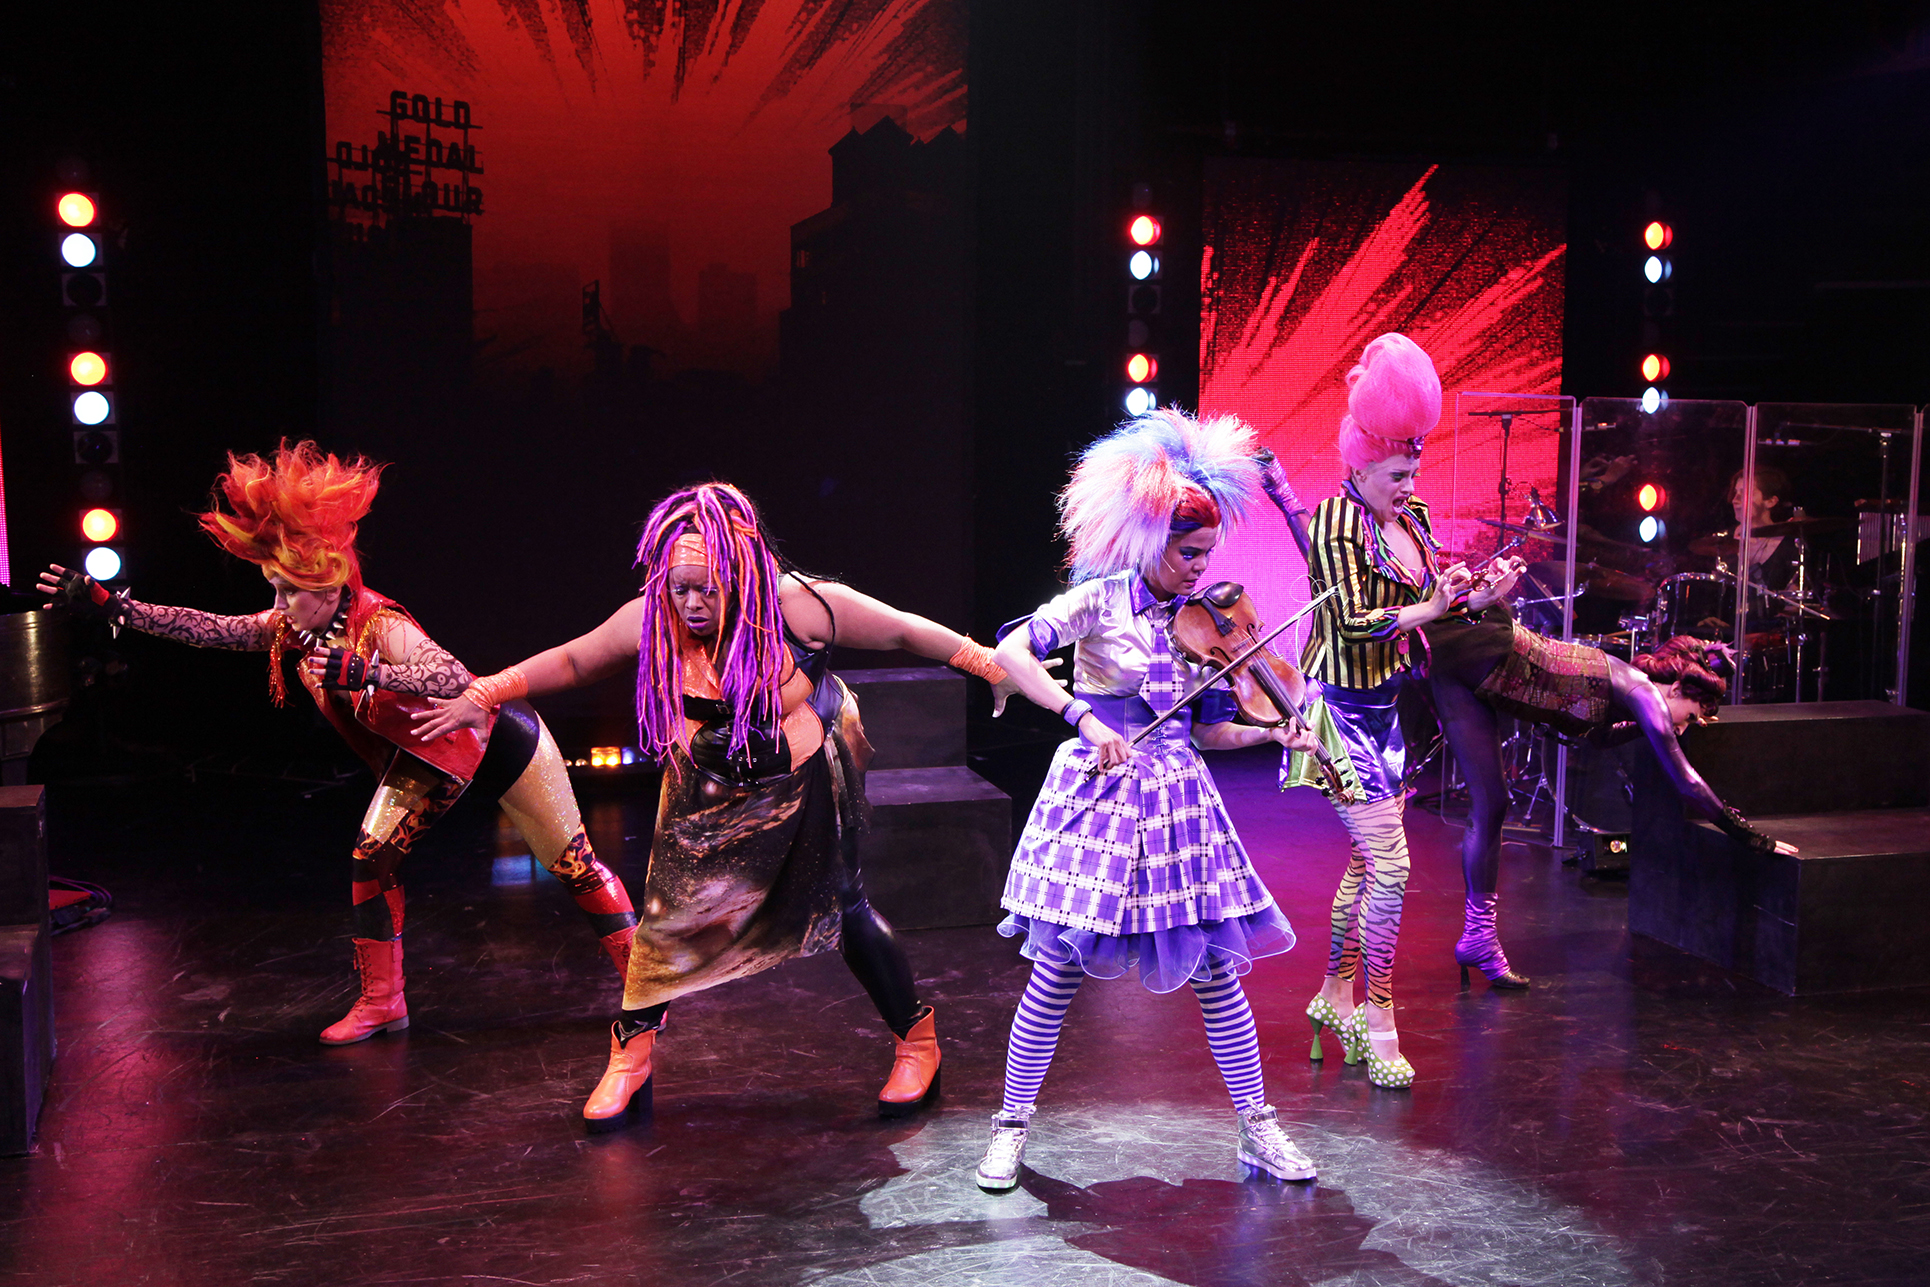 four performers in colorful costumes